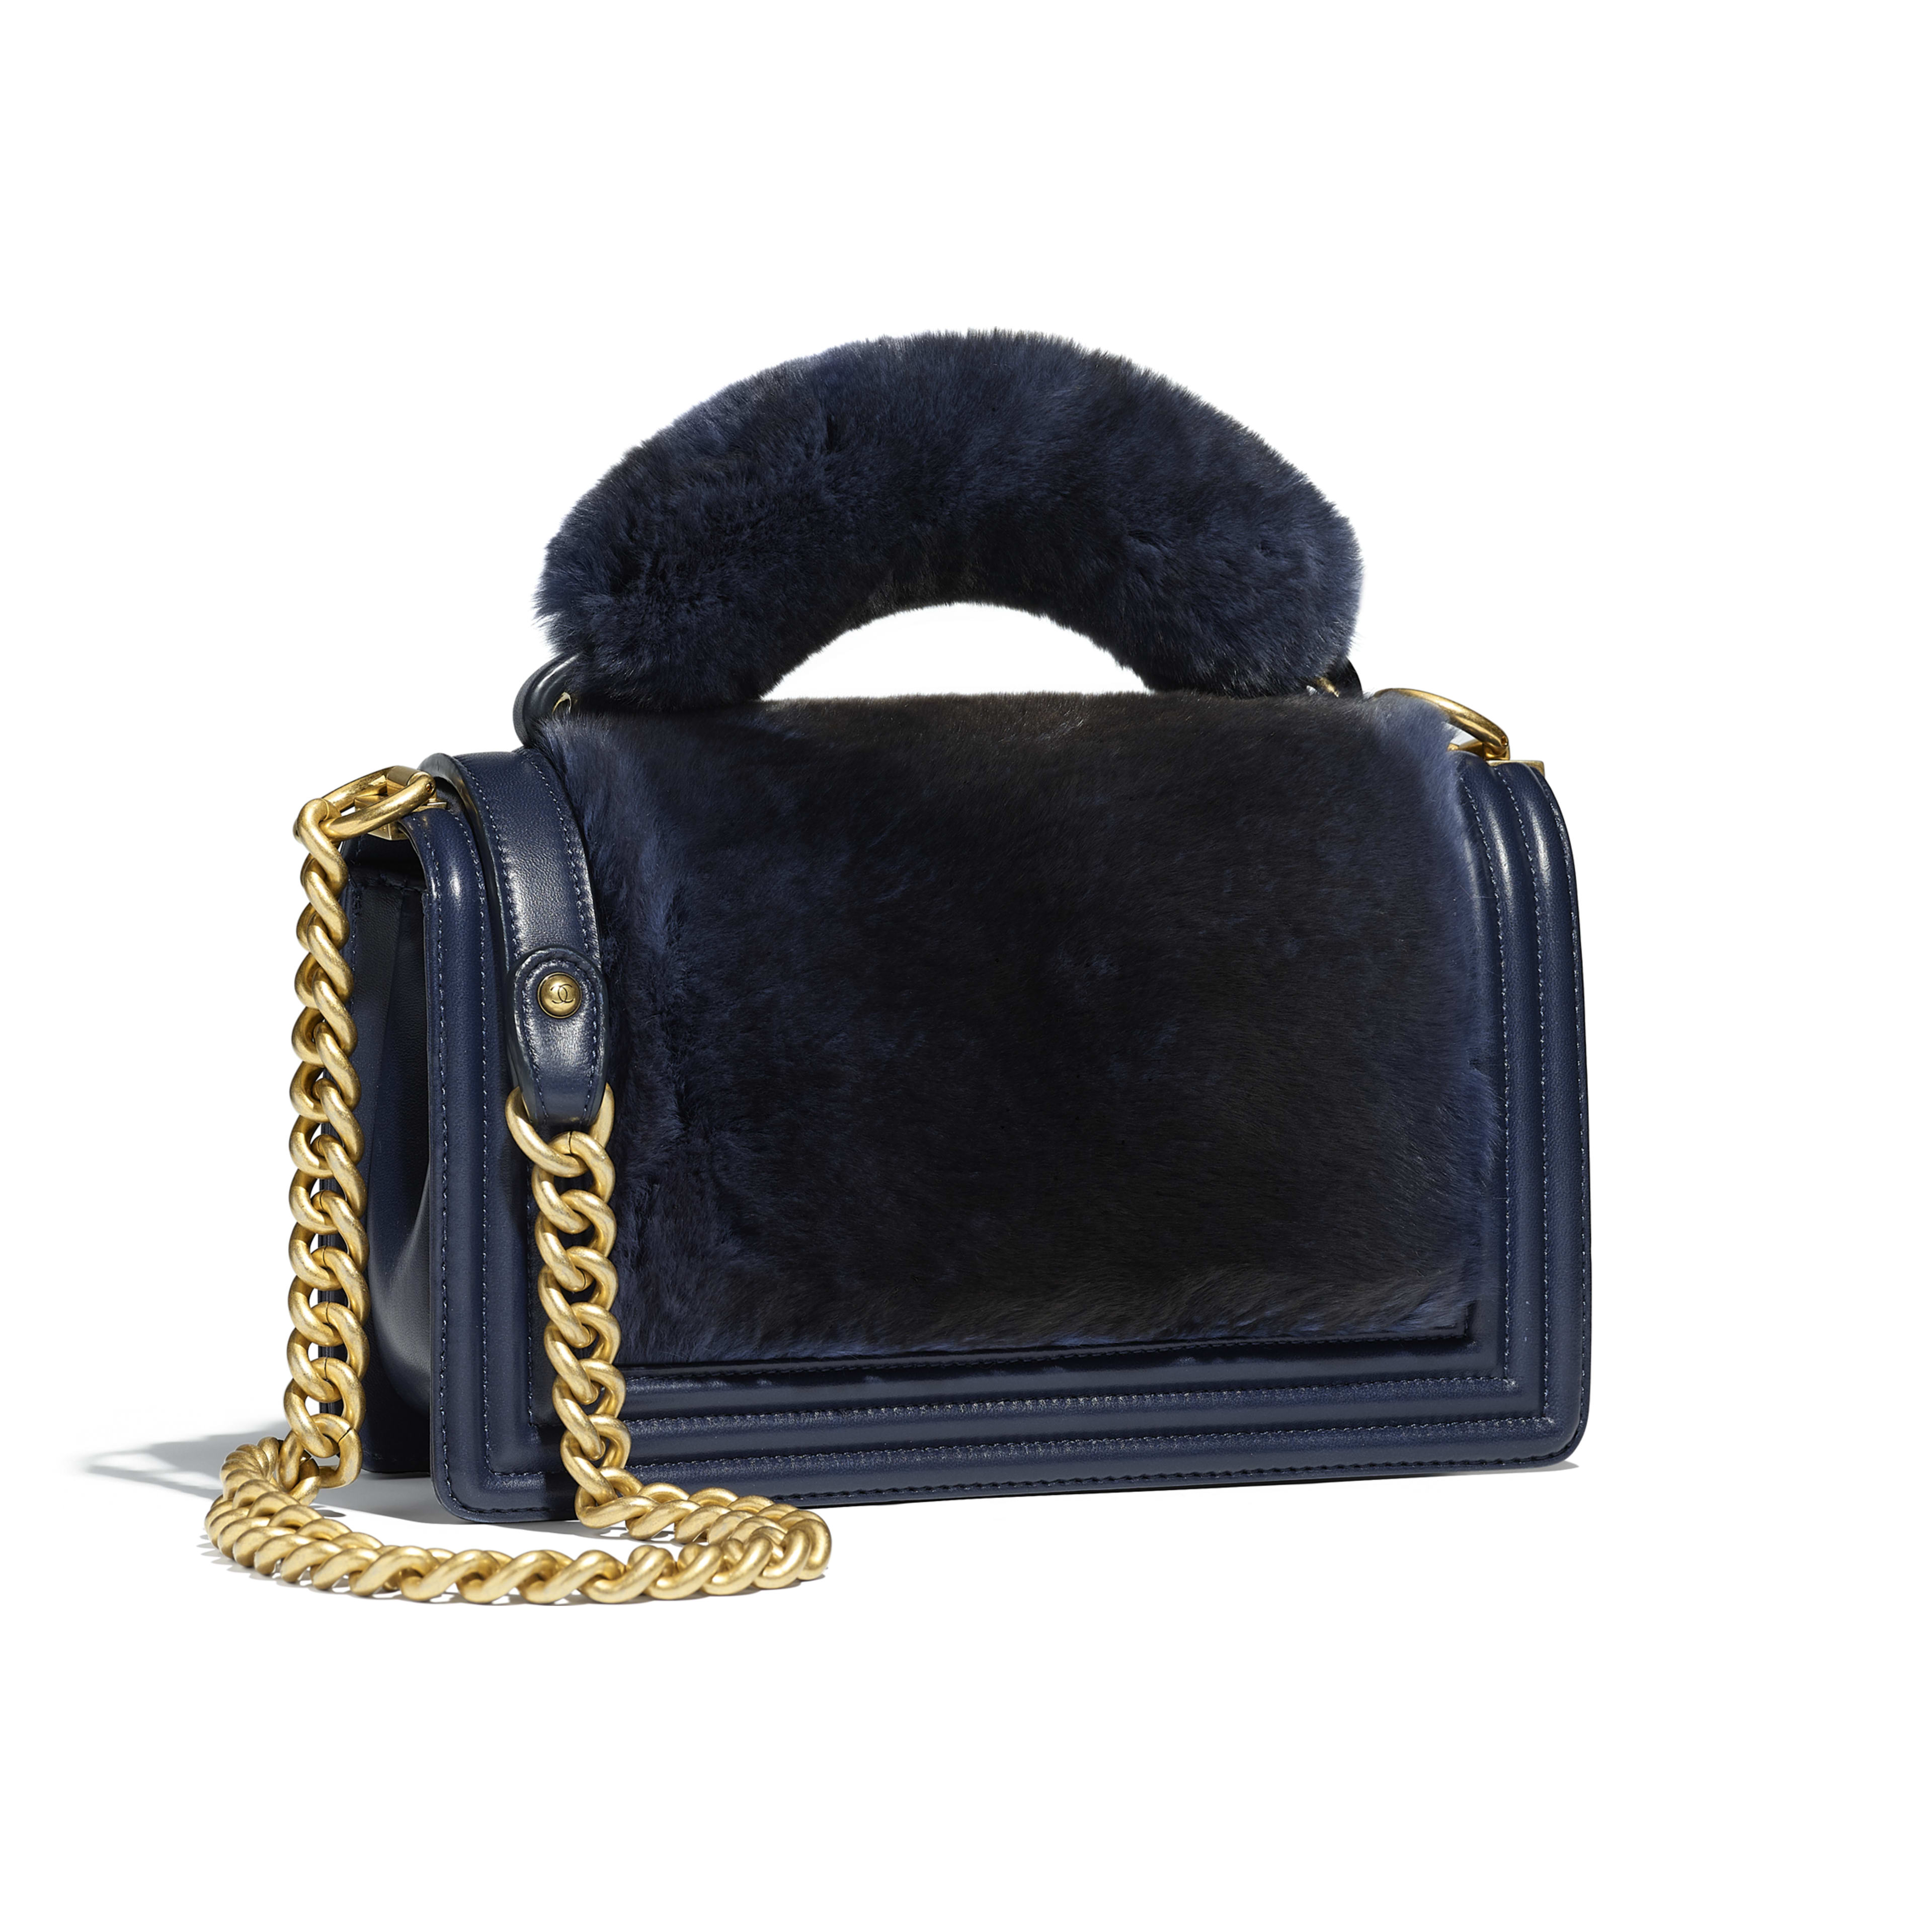 BOY CHANEL Flap Bag with Handle Orylag, Calfskin & Gold-Tone Metal Navy Blue -                                       view 2 - see full sized version